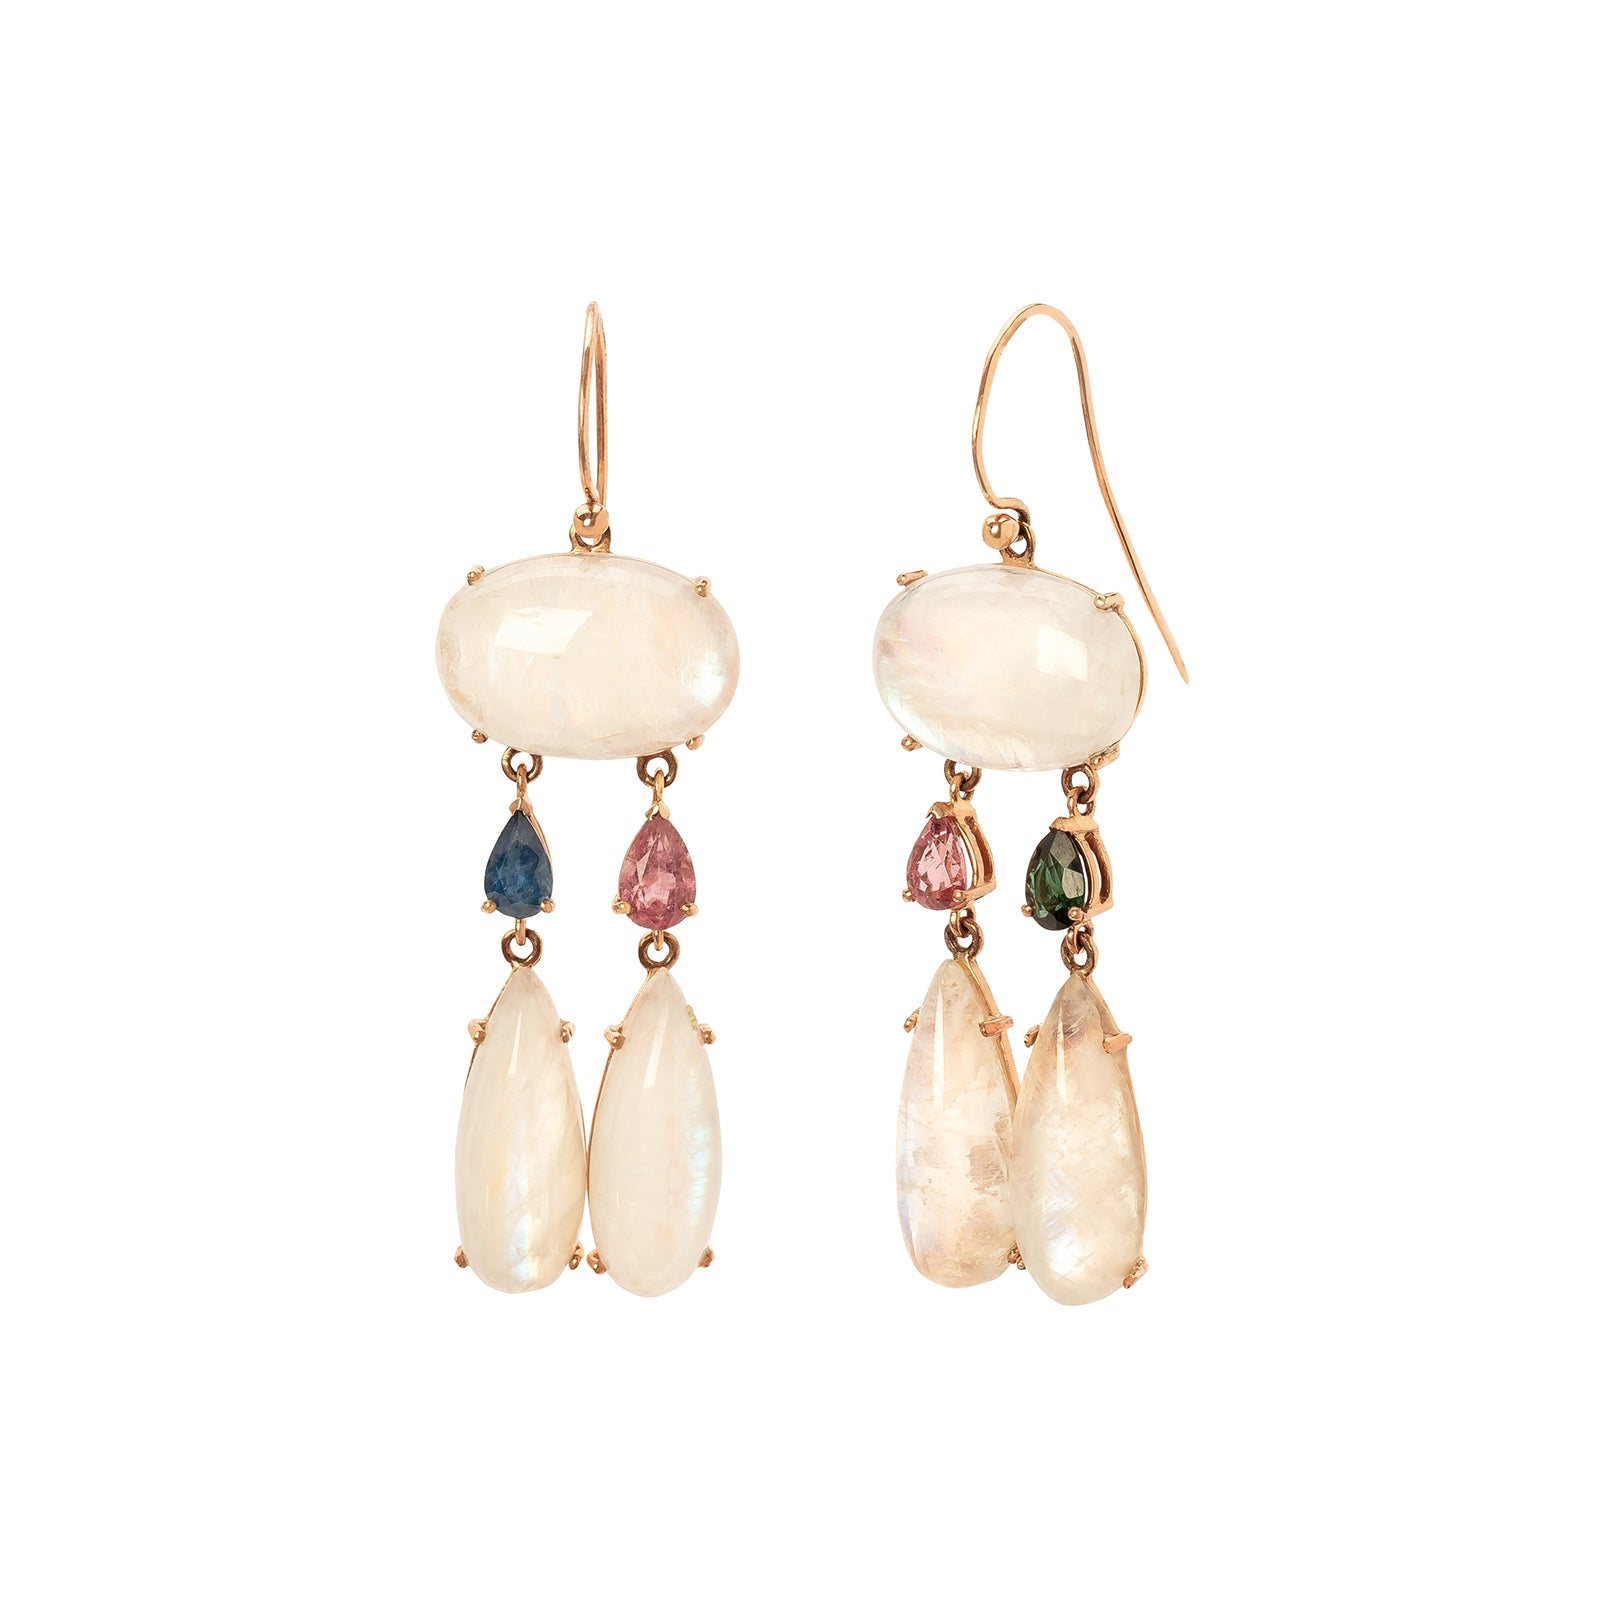 Christina Alexiou Drop Earrings - Moonstone & Sapphire & Tourmaline - Earrings - Broken English Jewelry